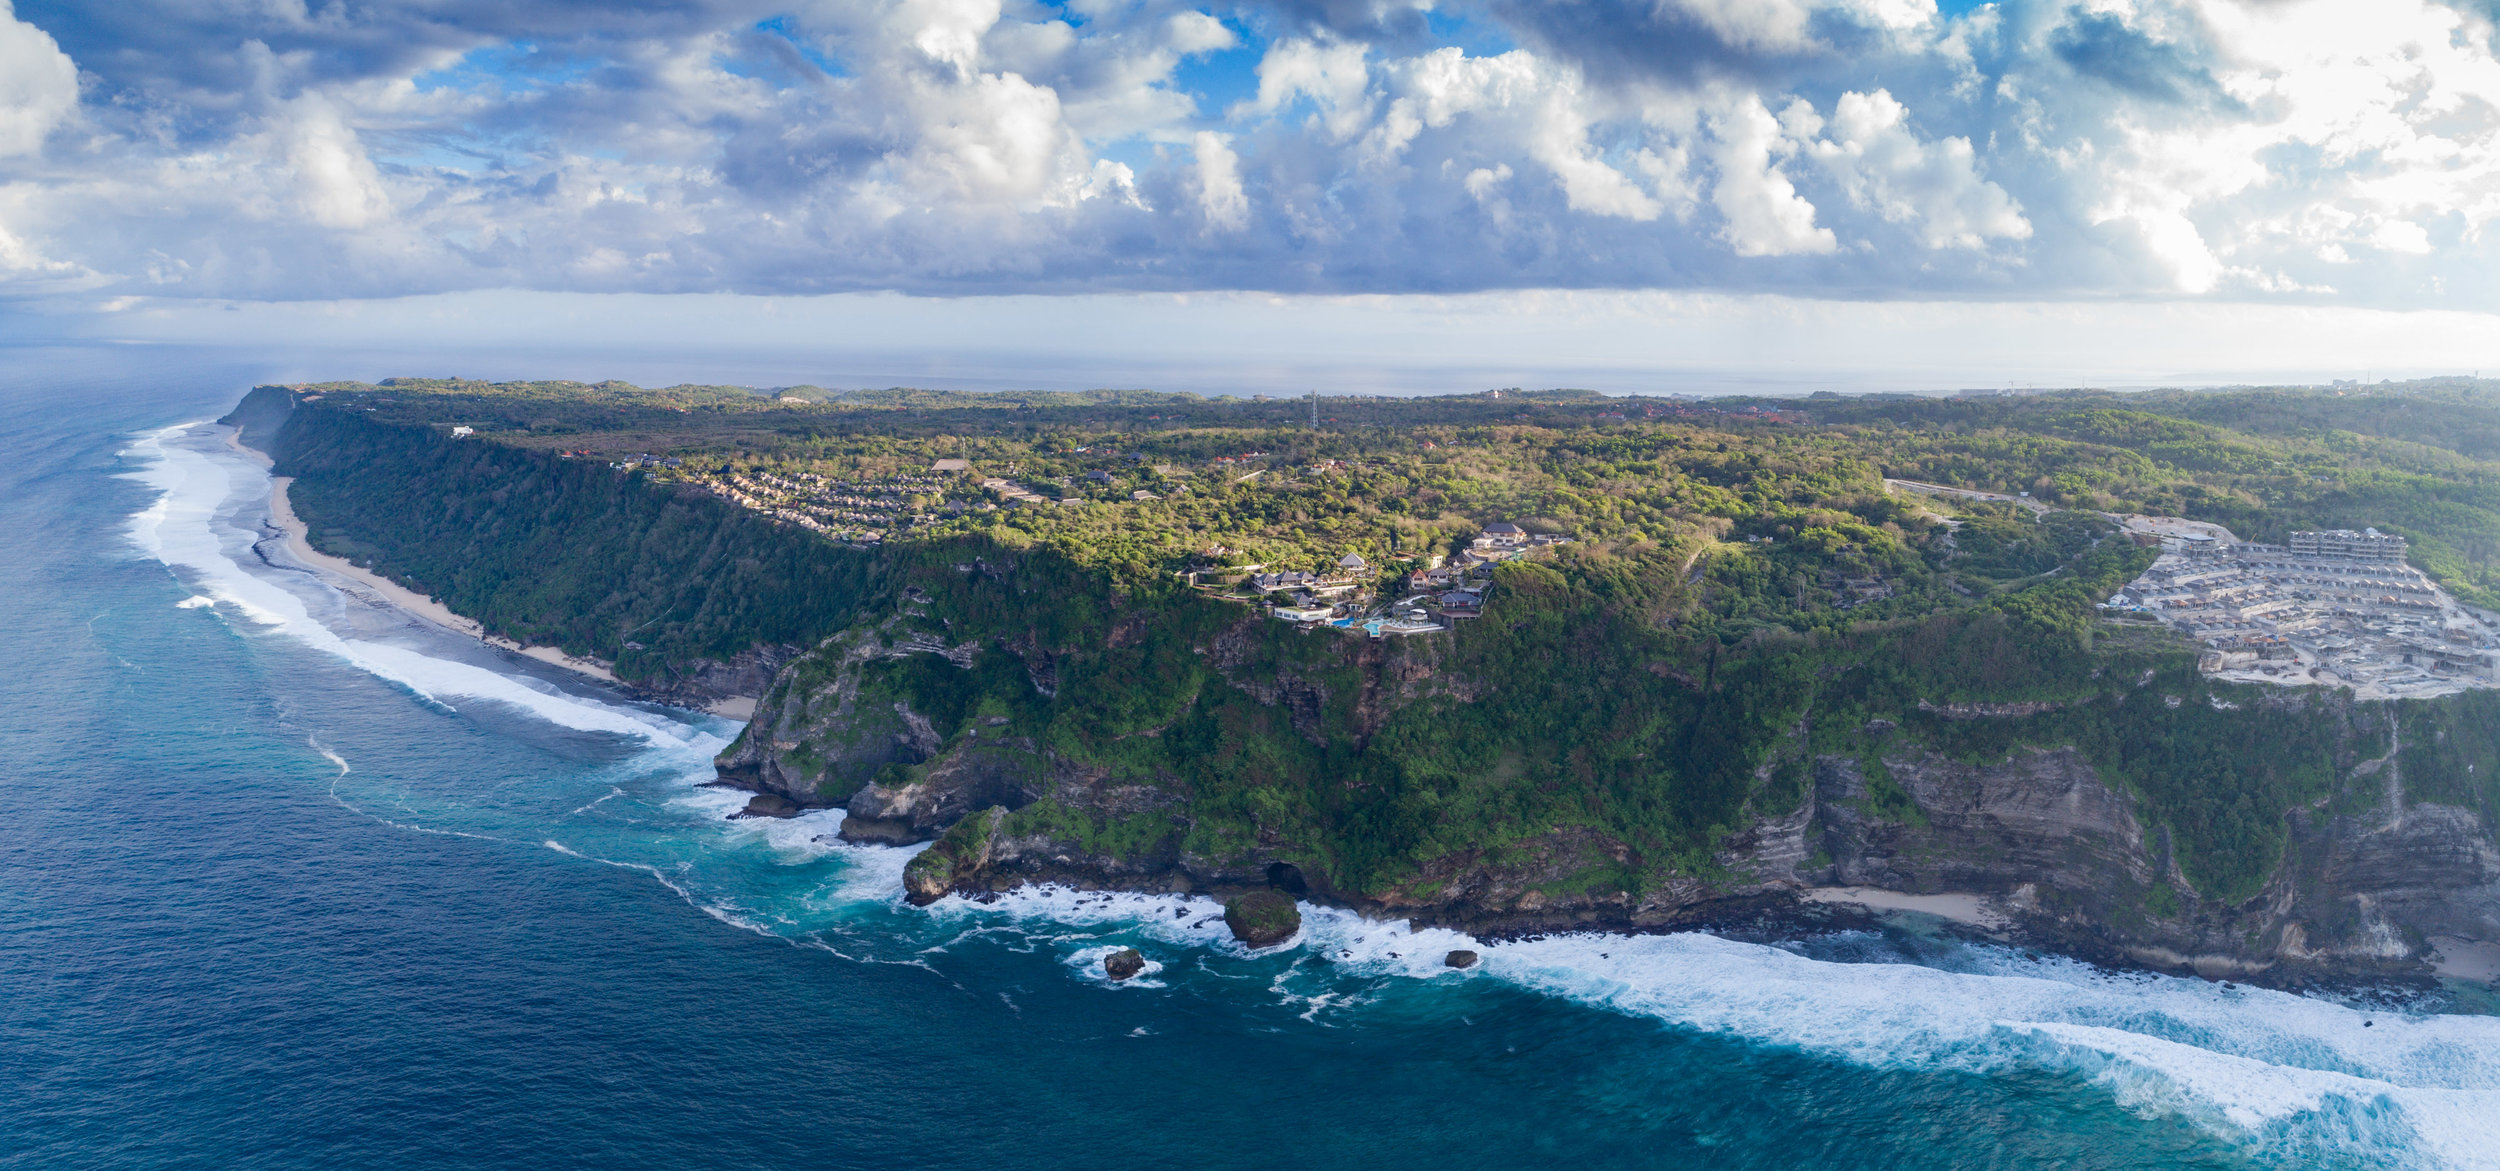 The edge - Uluwatu Clifftop.jpg